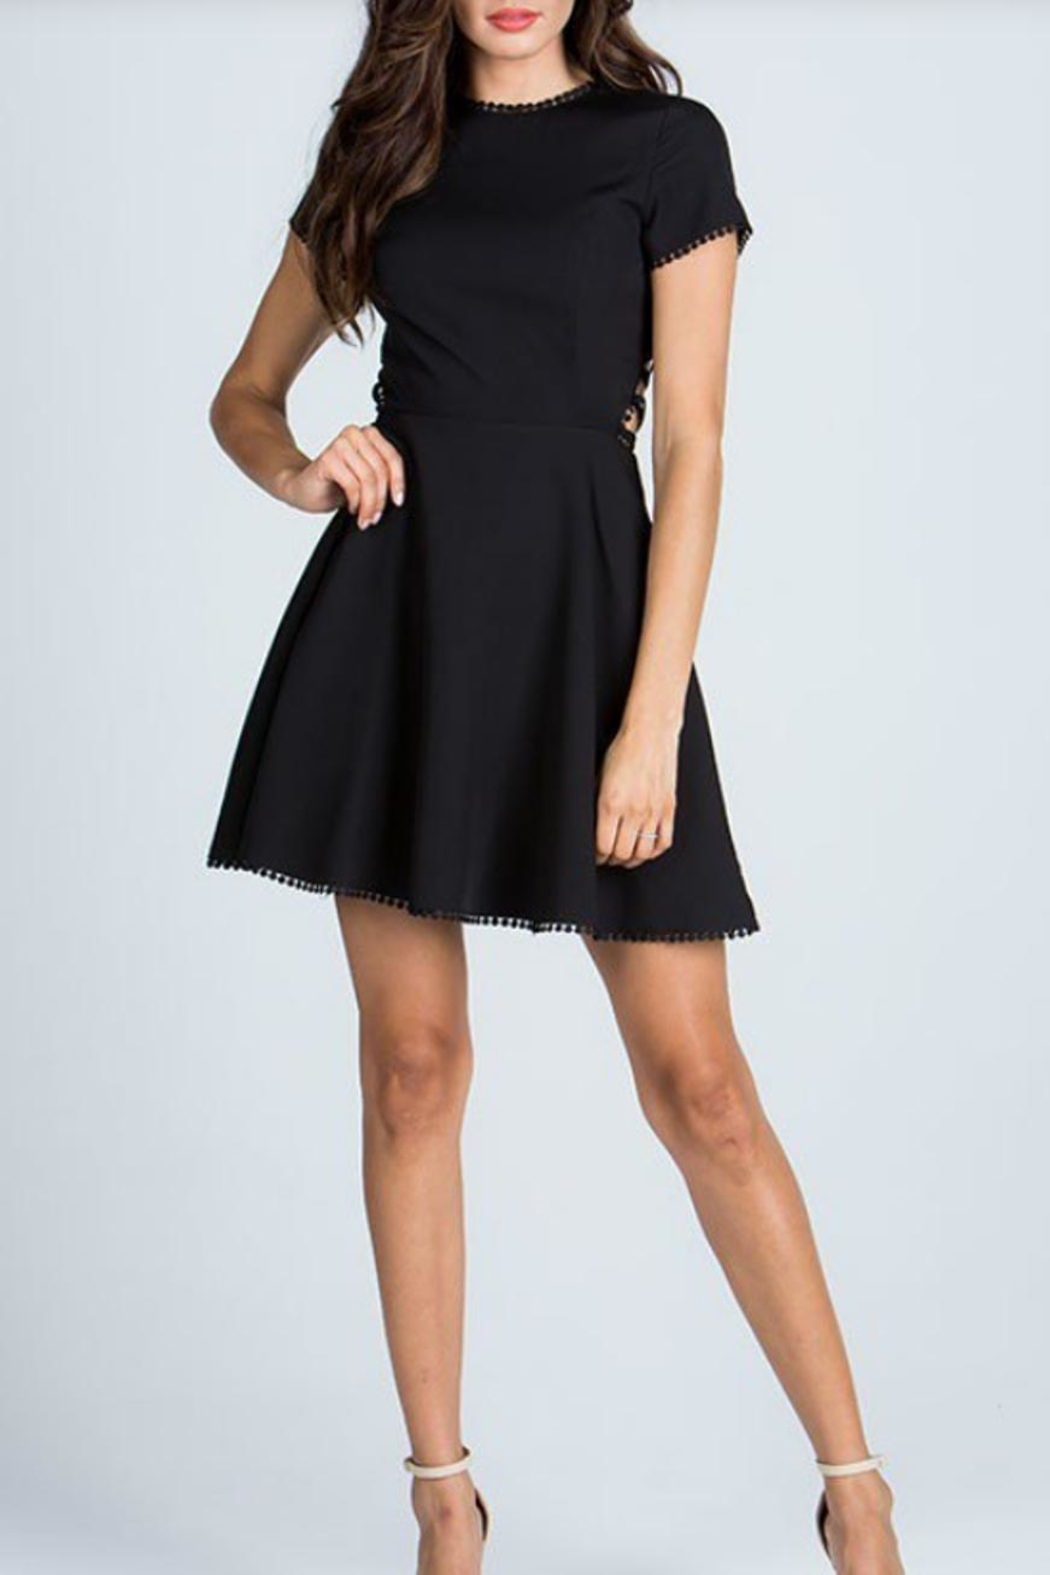 Starlette Apparel Lace Up Dress - Main Image